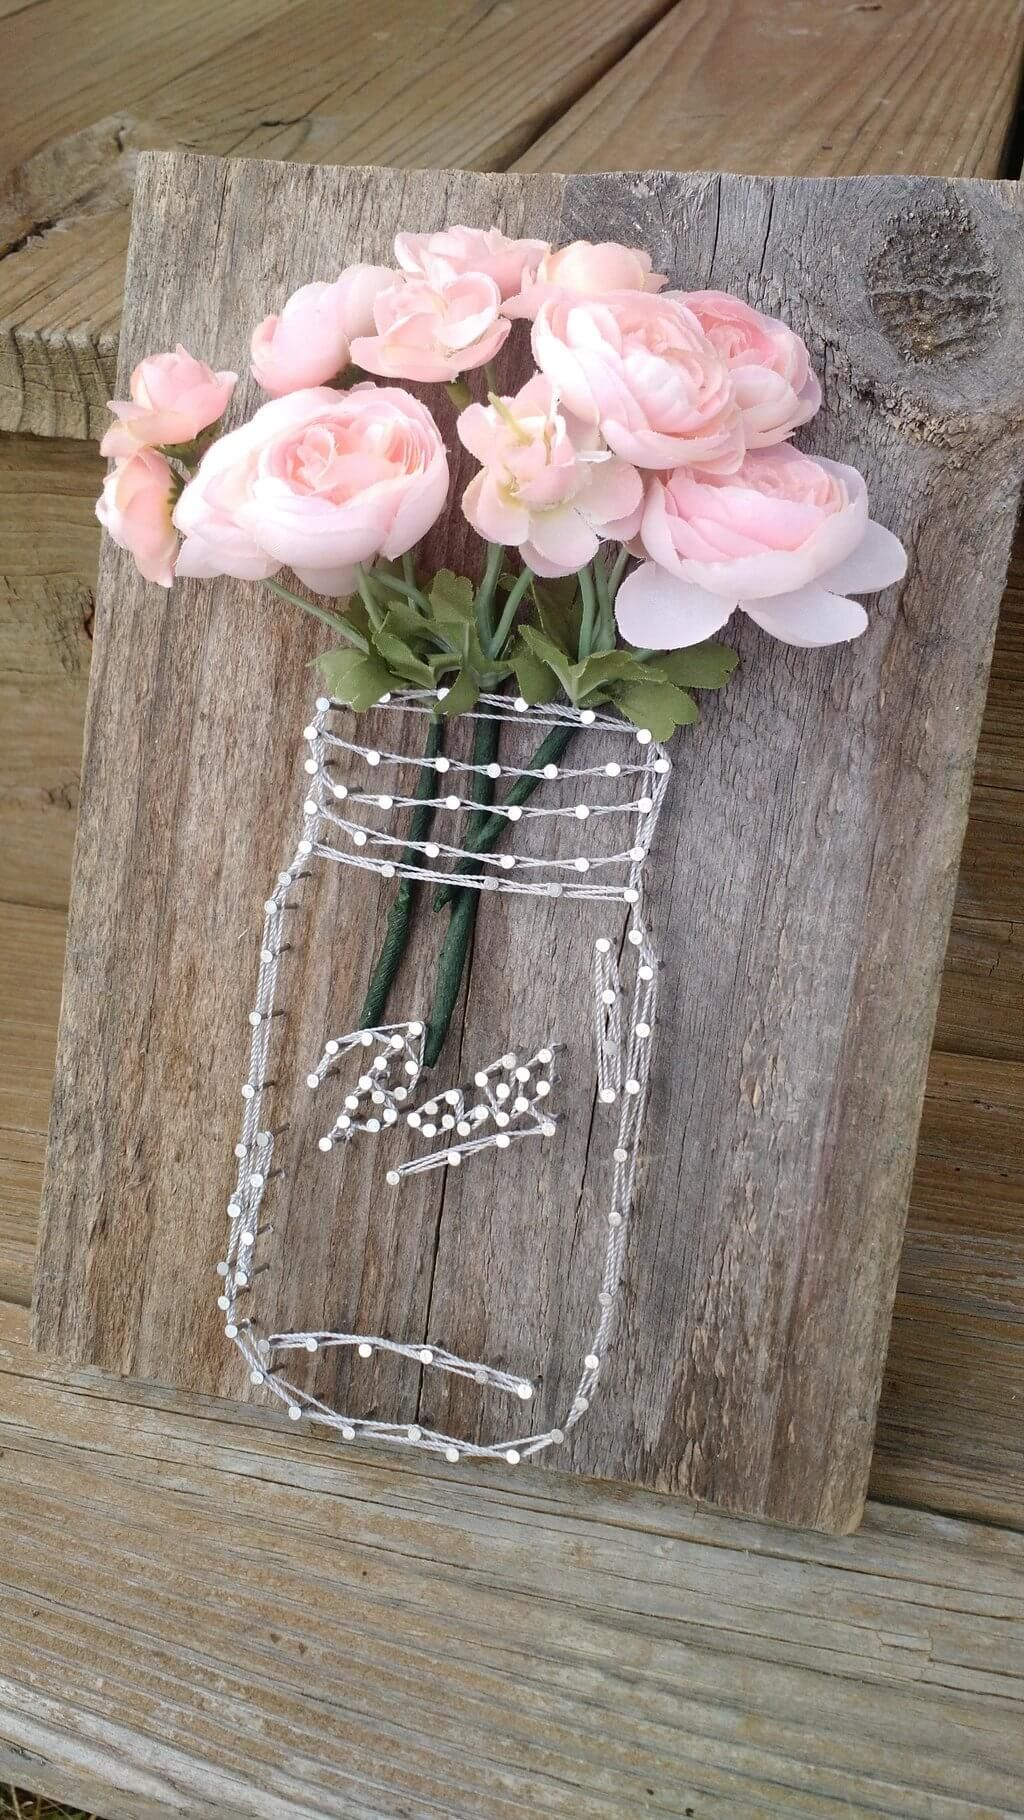 Rustic Mason Jar String Art Floral Display Pictures